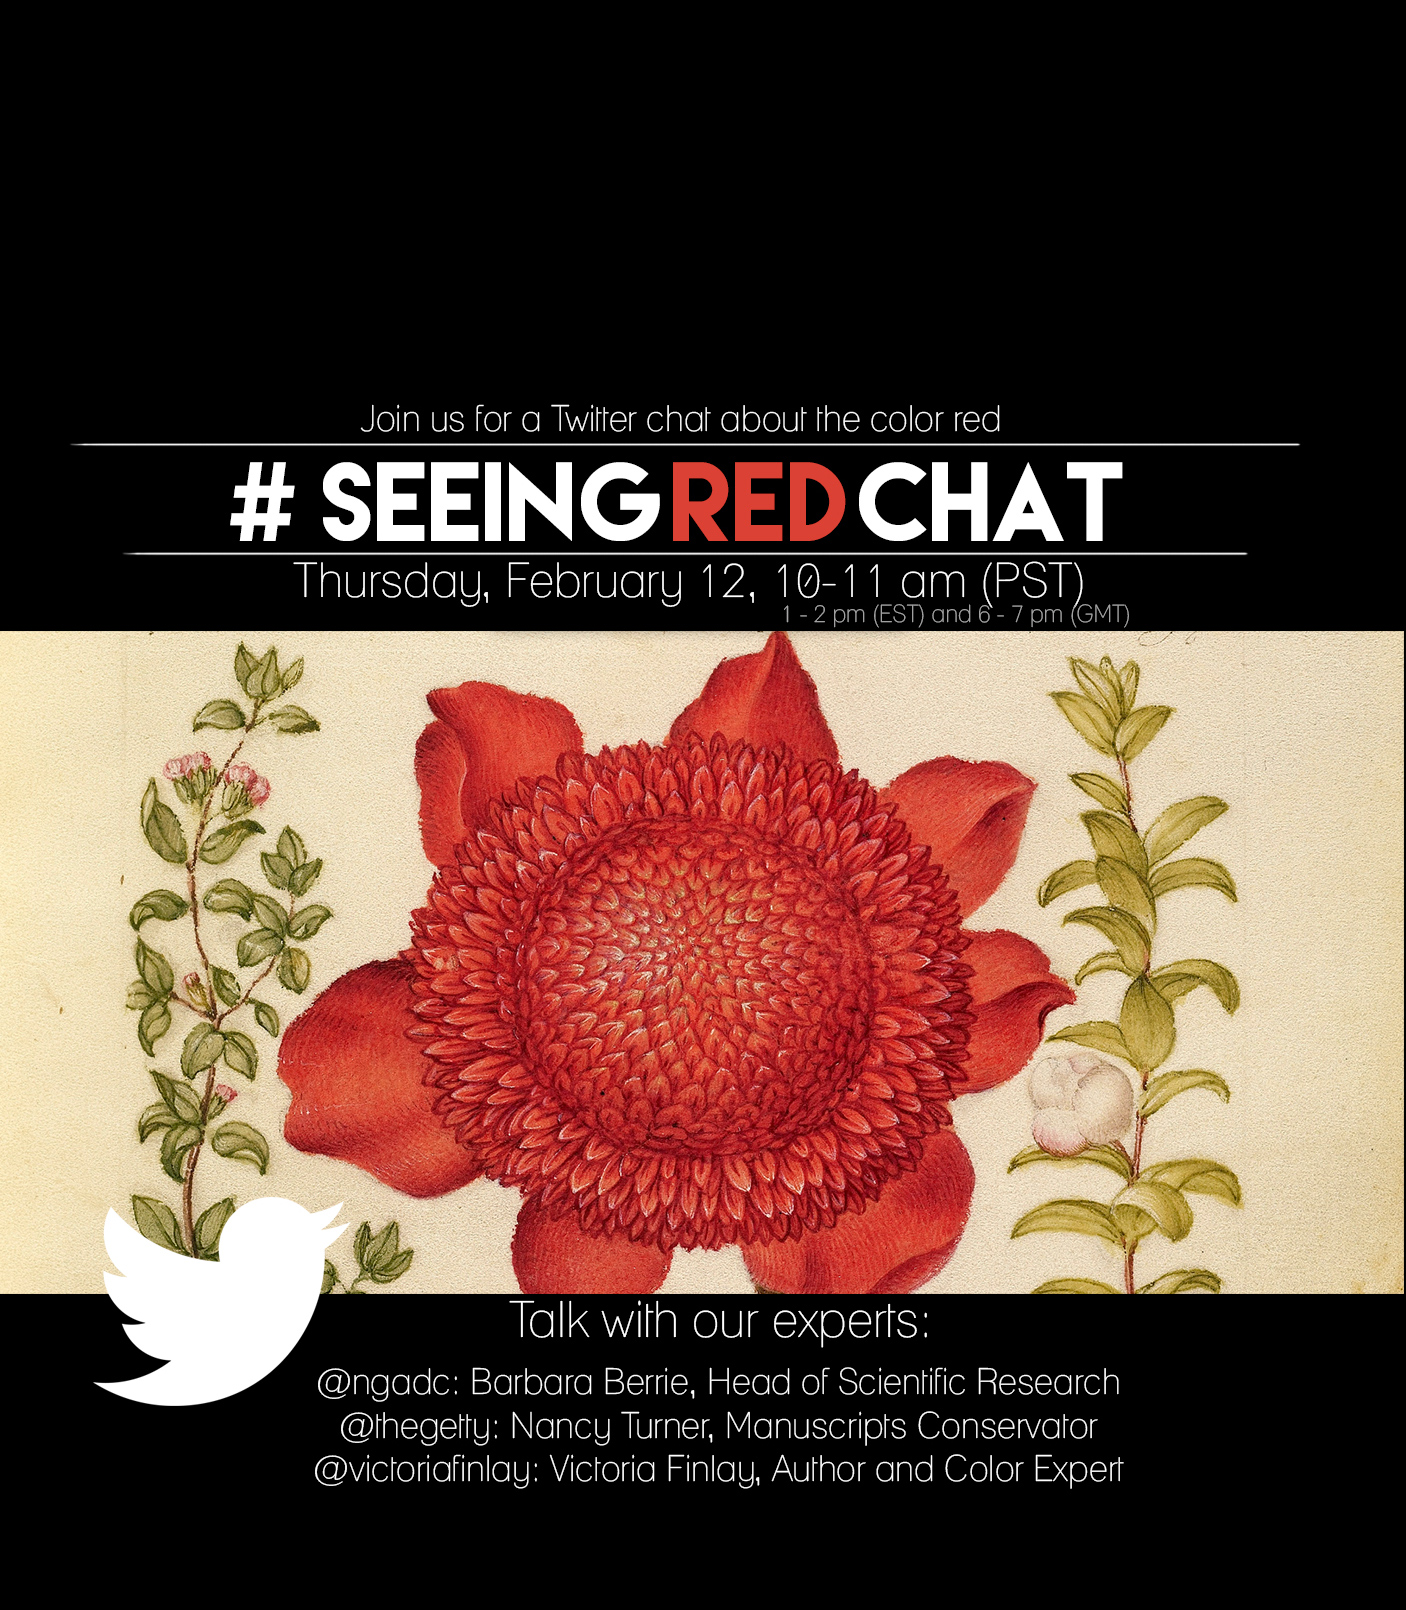 Join Three Color Experts for a Twitter Chat about Red | The Getty Iris